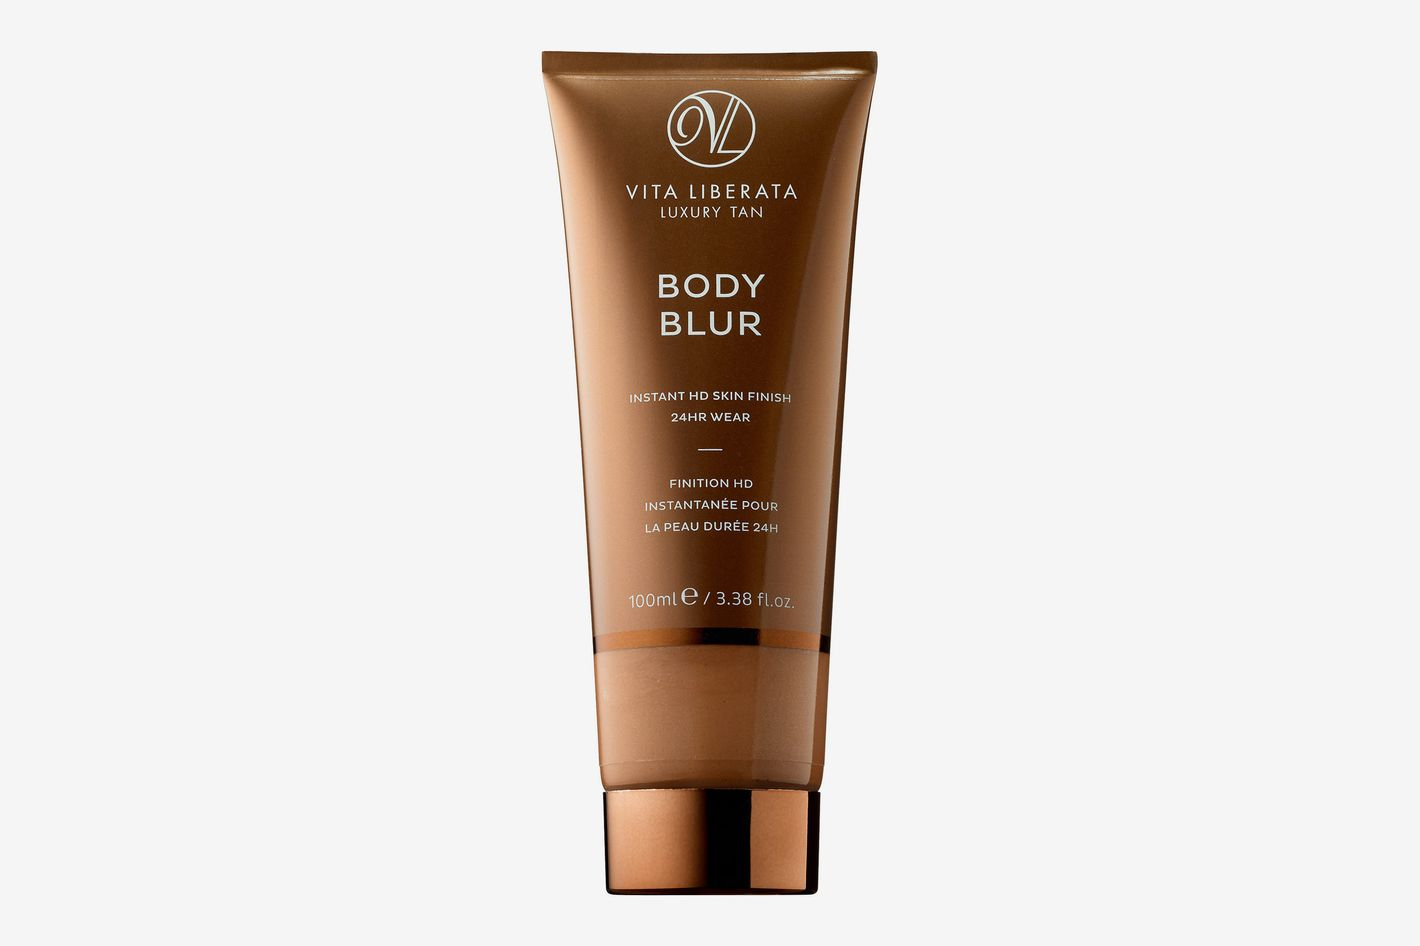 Vita Liberata Body Blur Instant HD Skin Finish